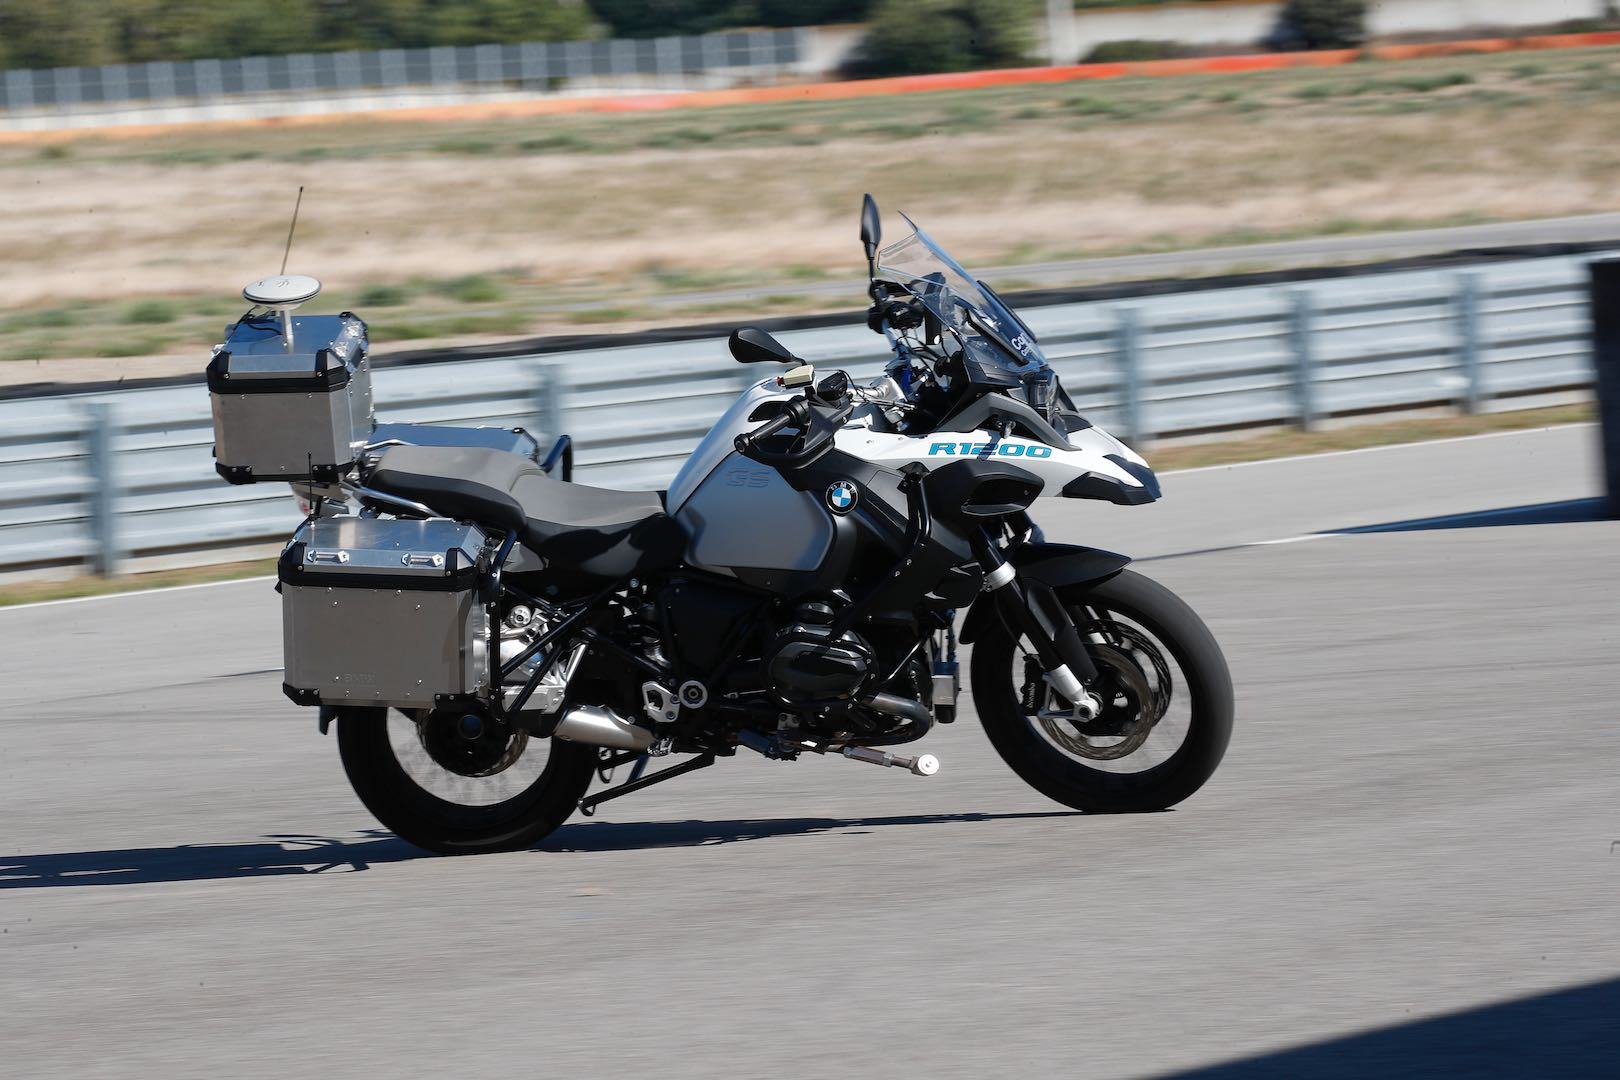 bmw motorcycles 39 s 1st autonomous motorcycle in action r 1200 gs video. Black Bedroom Furniture Sets. Home Design Ideas